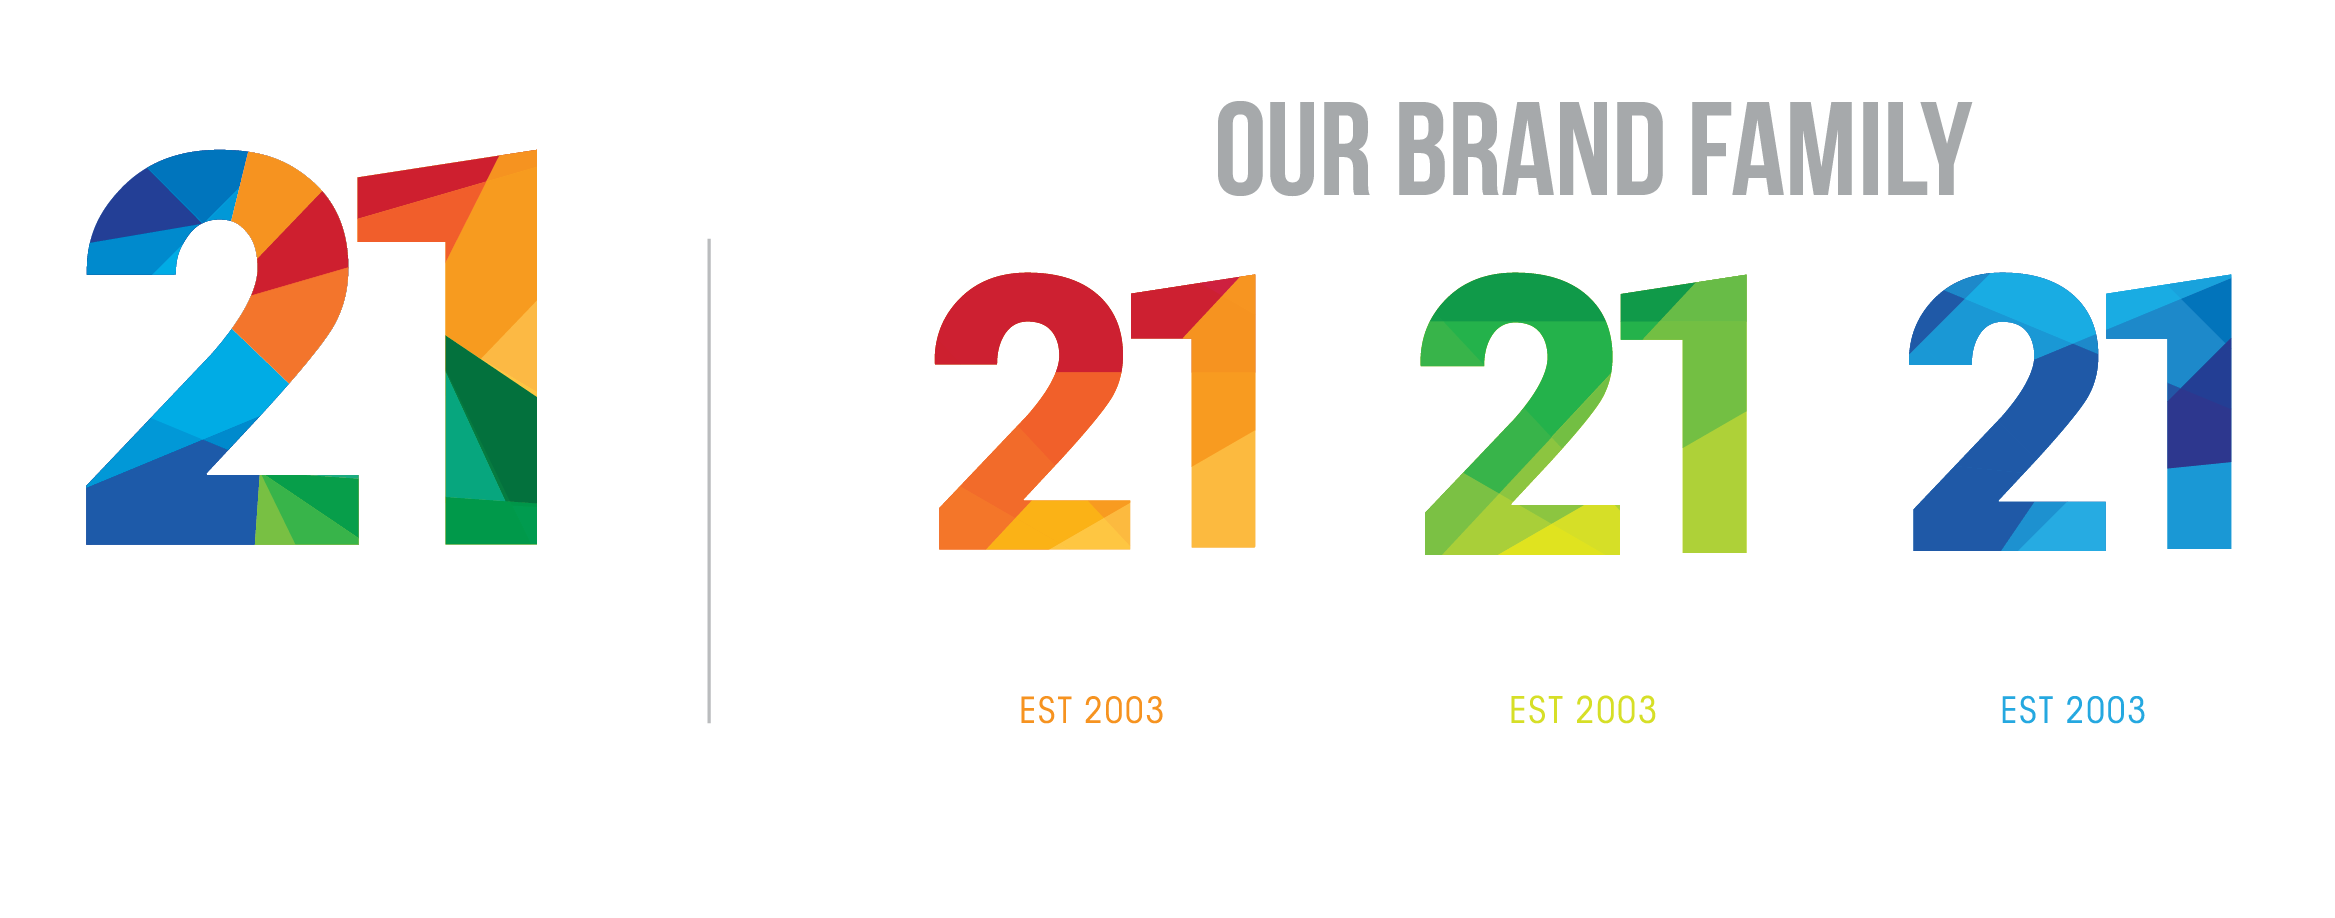 21Digital - Our Brand Family